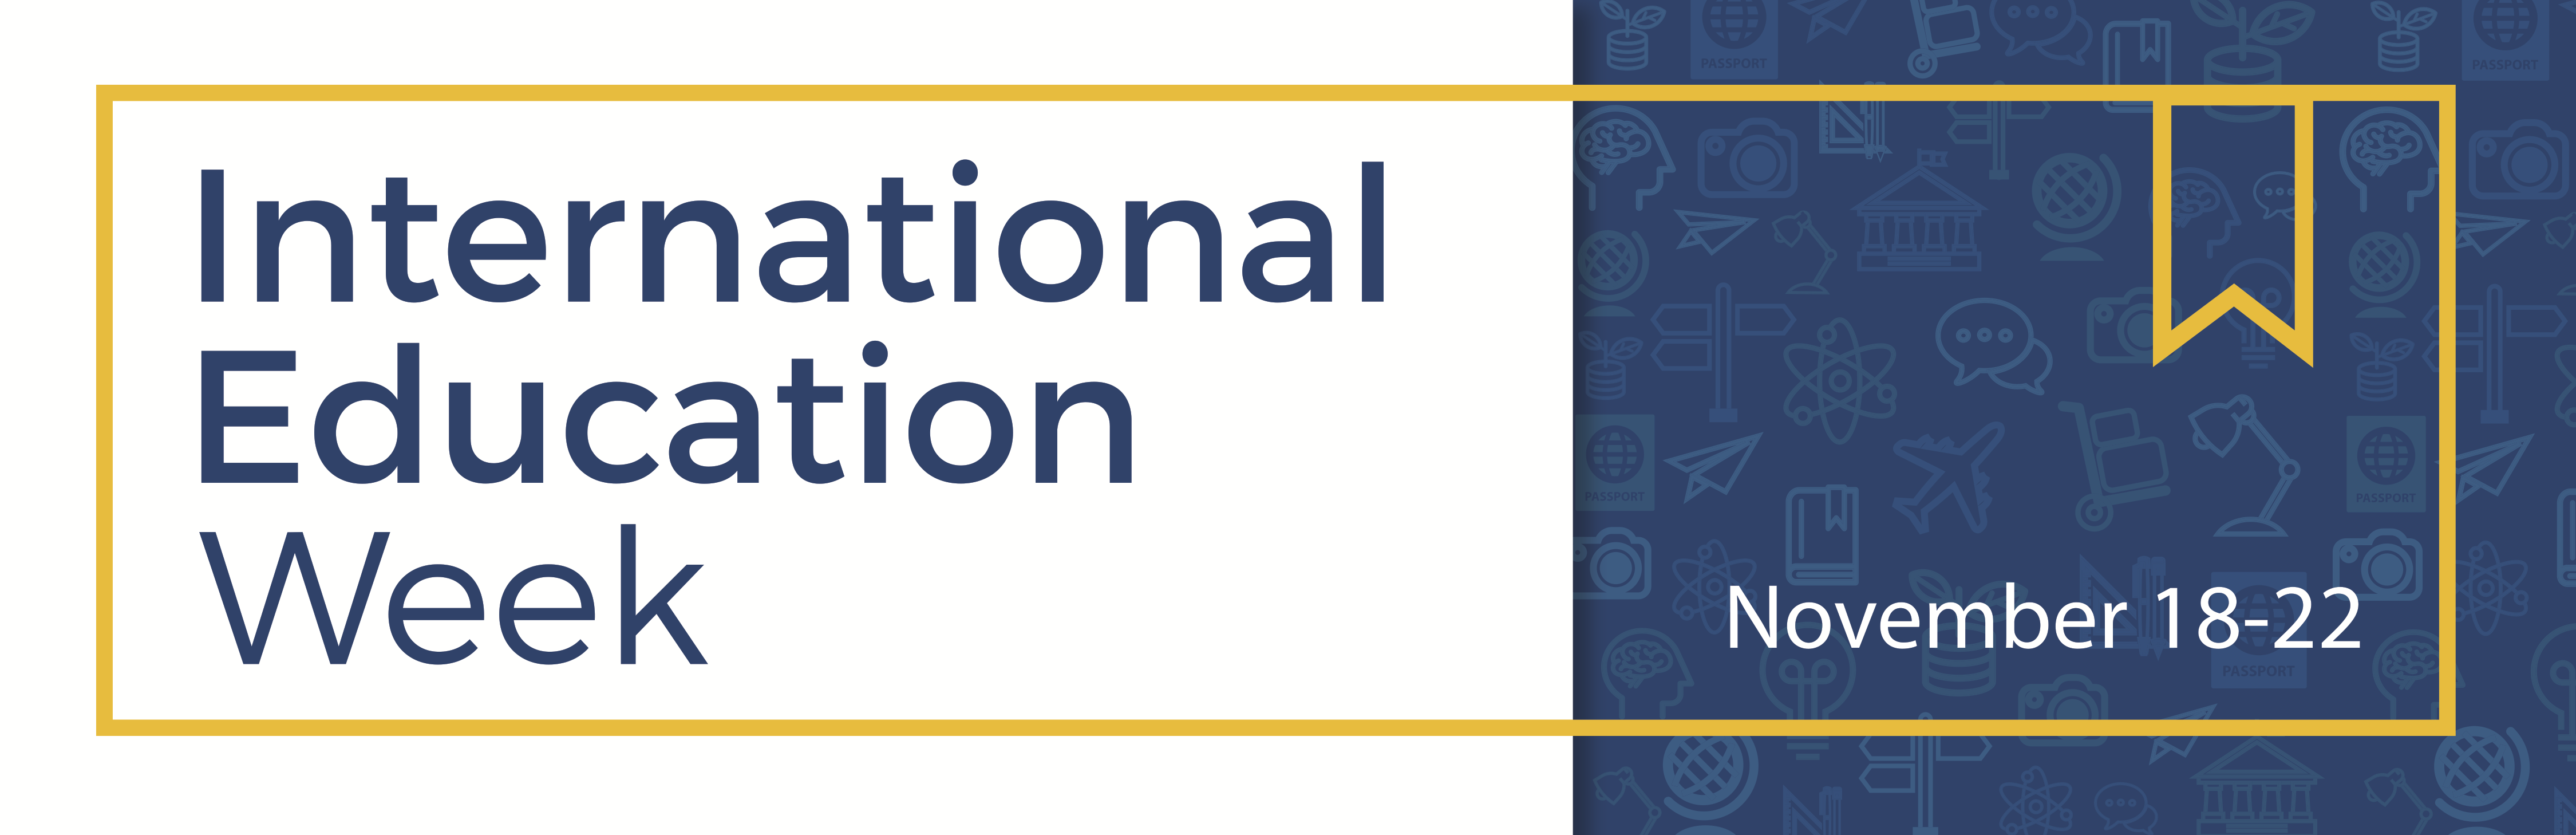 International Education Week 2018 is Nov. 13-16